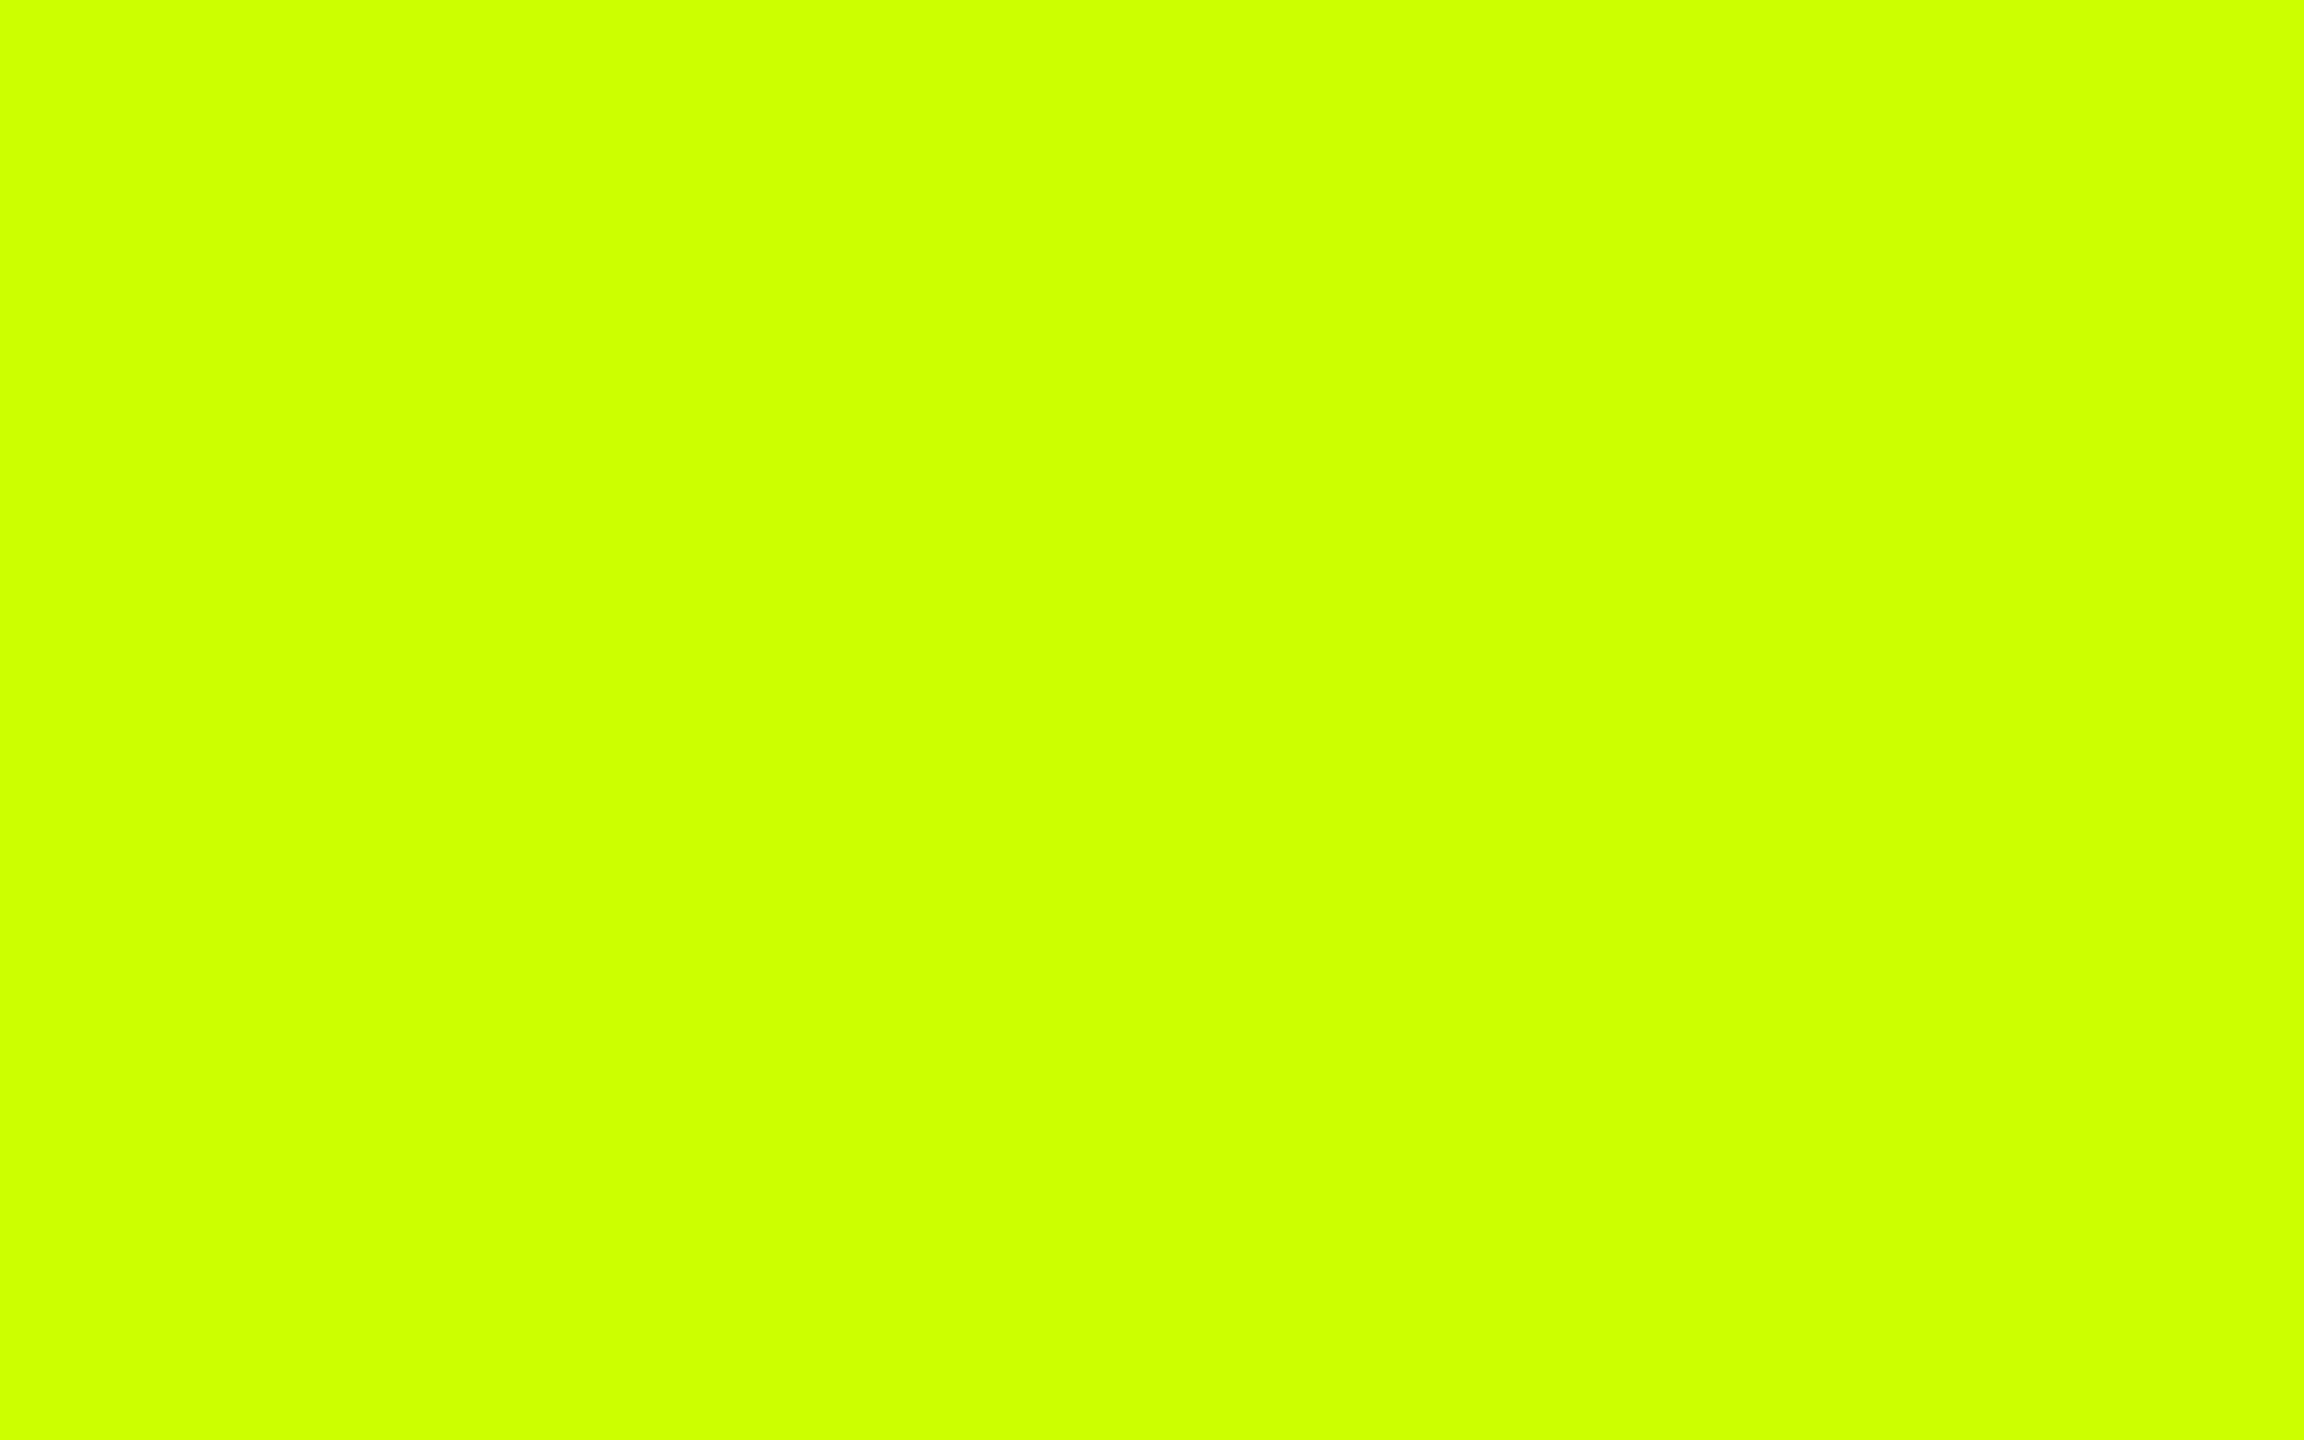 2304x1440 Fluorescent Yellow Solid Color Background